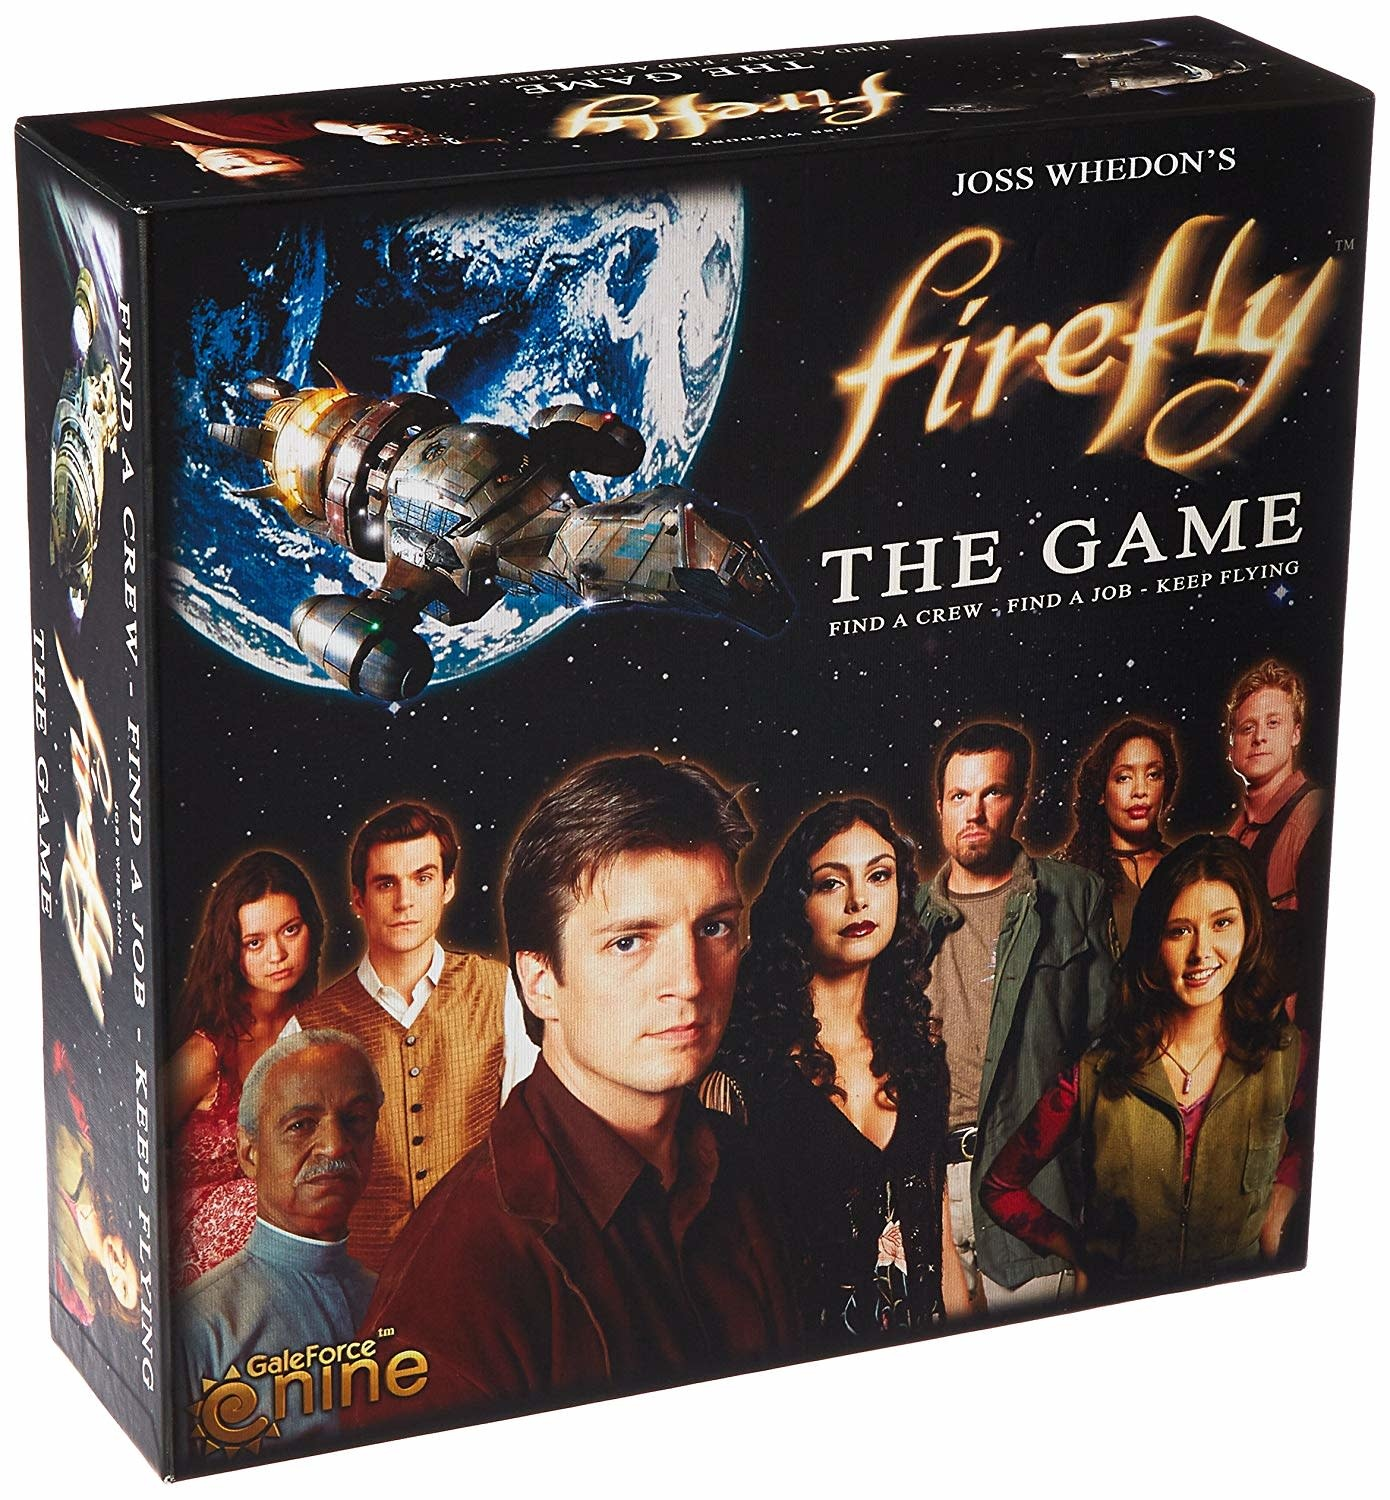 Galeforce 9 Firefly: The Game